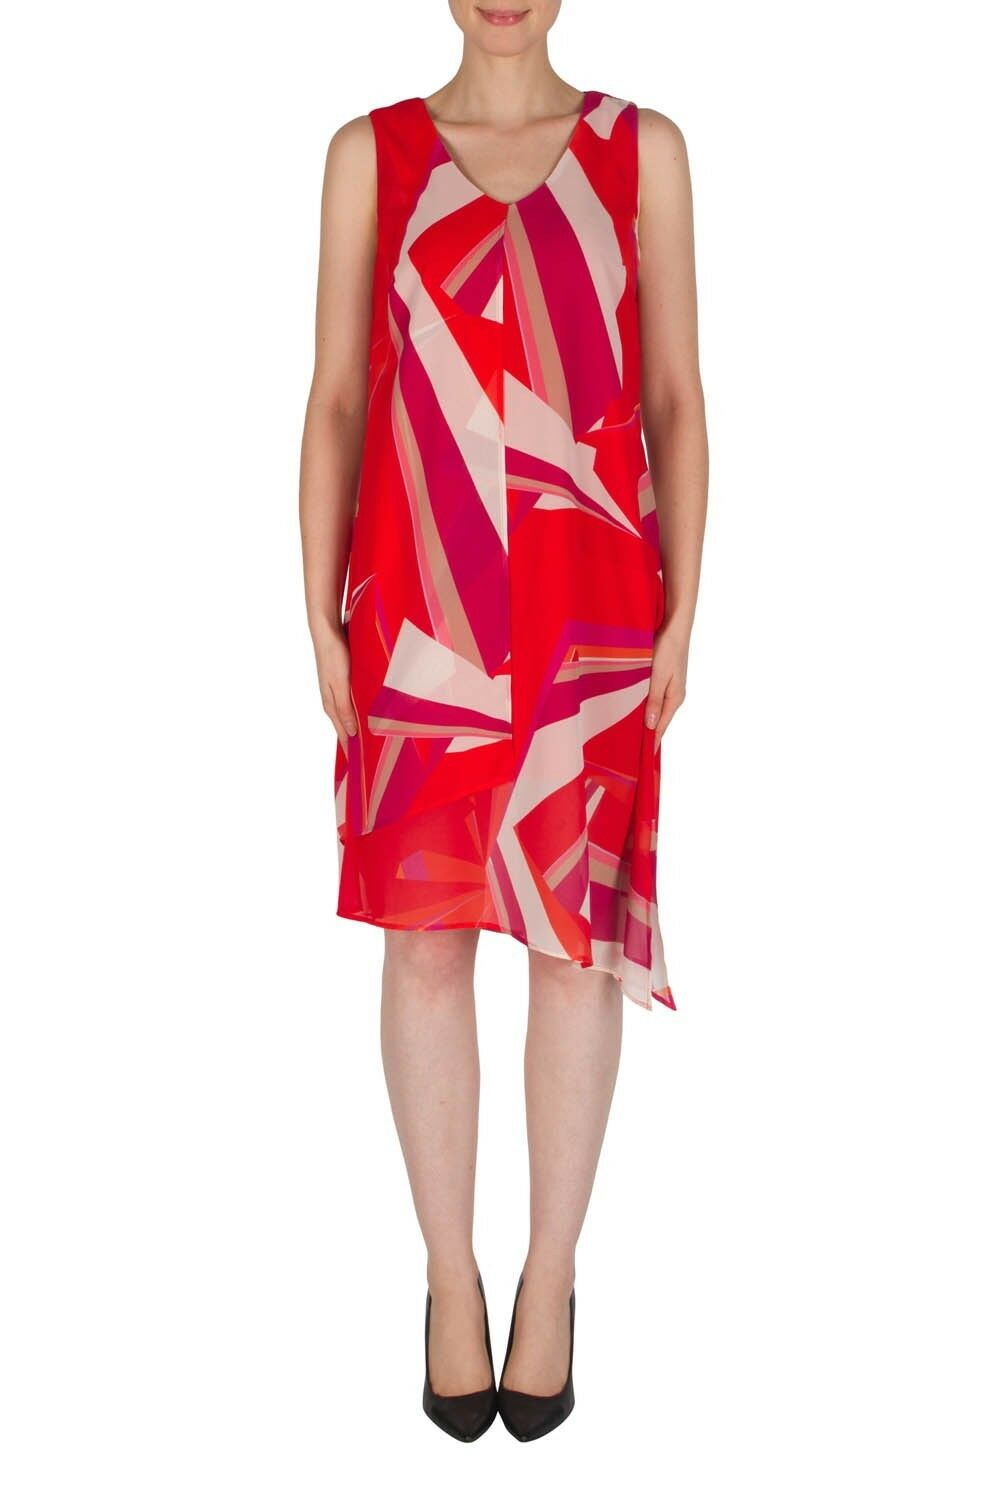 Joseph Ribkoff Red Beige Vivid Graphic Print Asymmetric Dress 182608 US 8